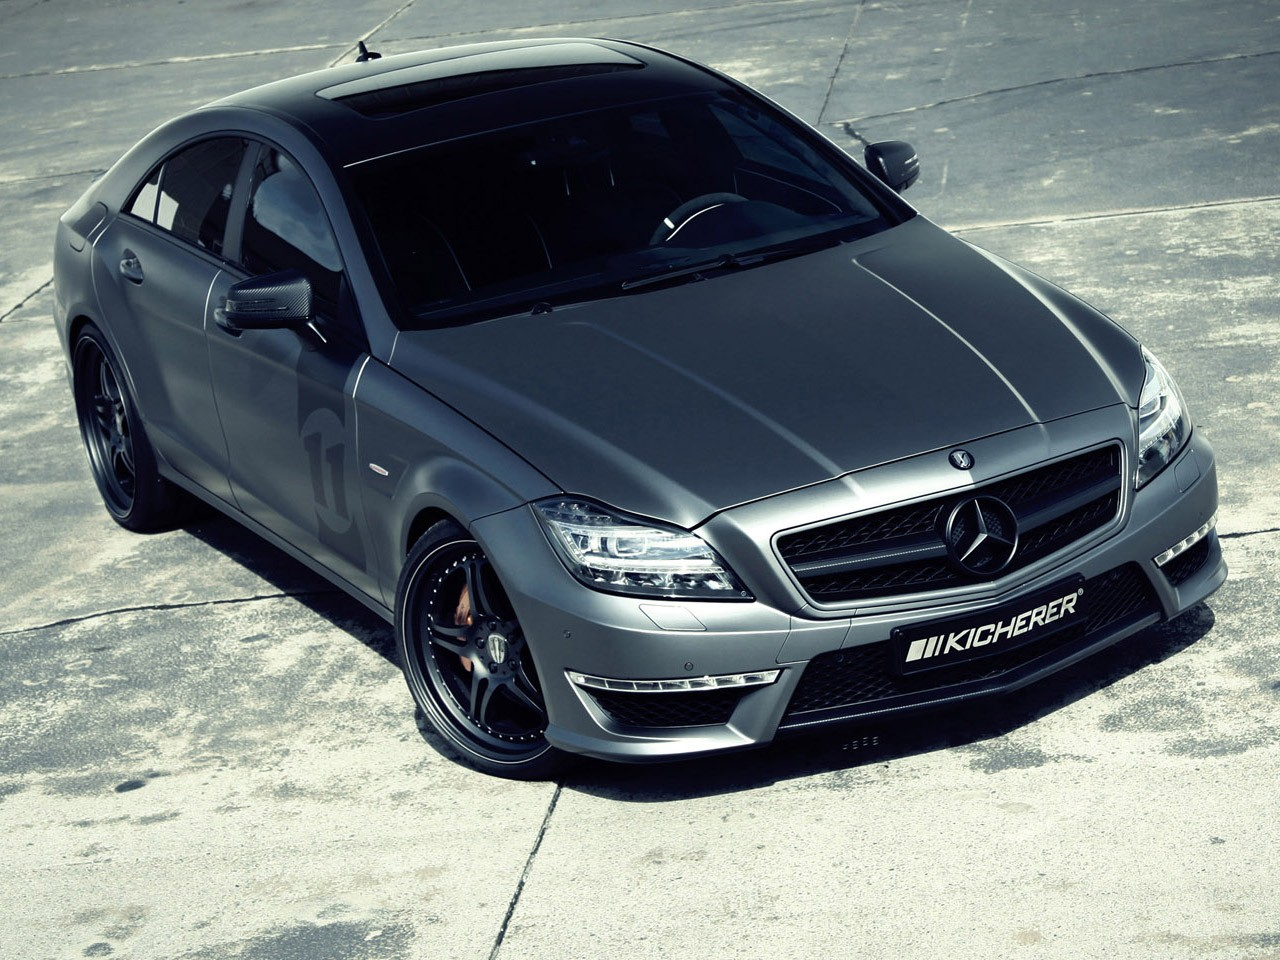 2012 Kicherer - AMG Mercedes CLS 63 Yachting C218